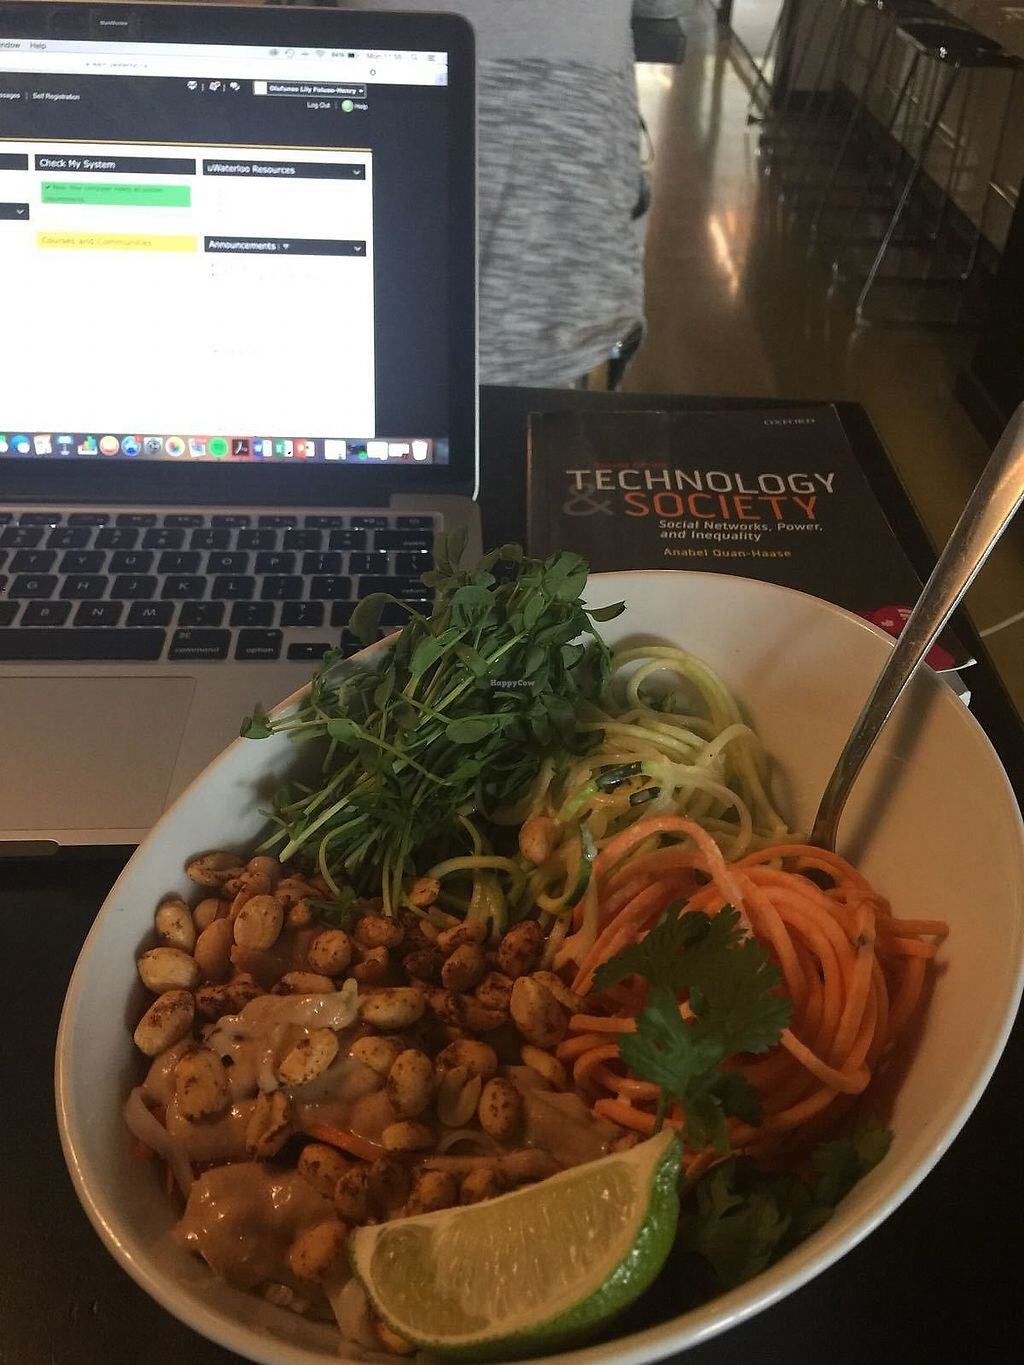 """Photo of Thrive Juice Bar  by <a href=""""/members/profile/FunsoFH"""">FunsoFH</a> <br/>Peanut pad thai salad <br/> November 22, 2017  - <a href='/contact/abuse/image/25931/328000'>Report</a>"""